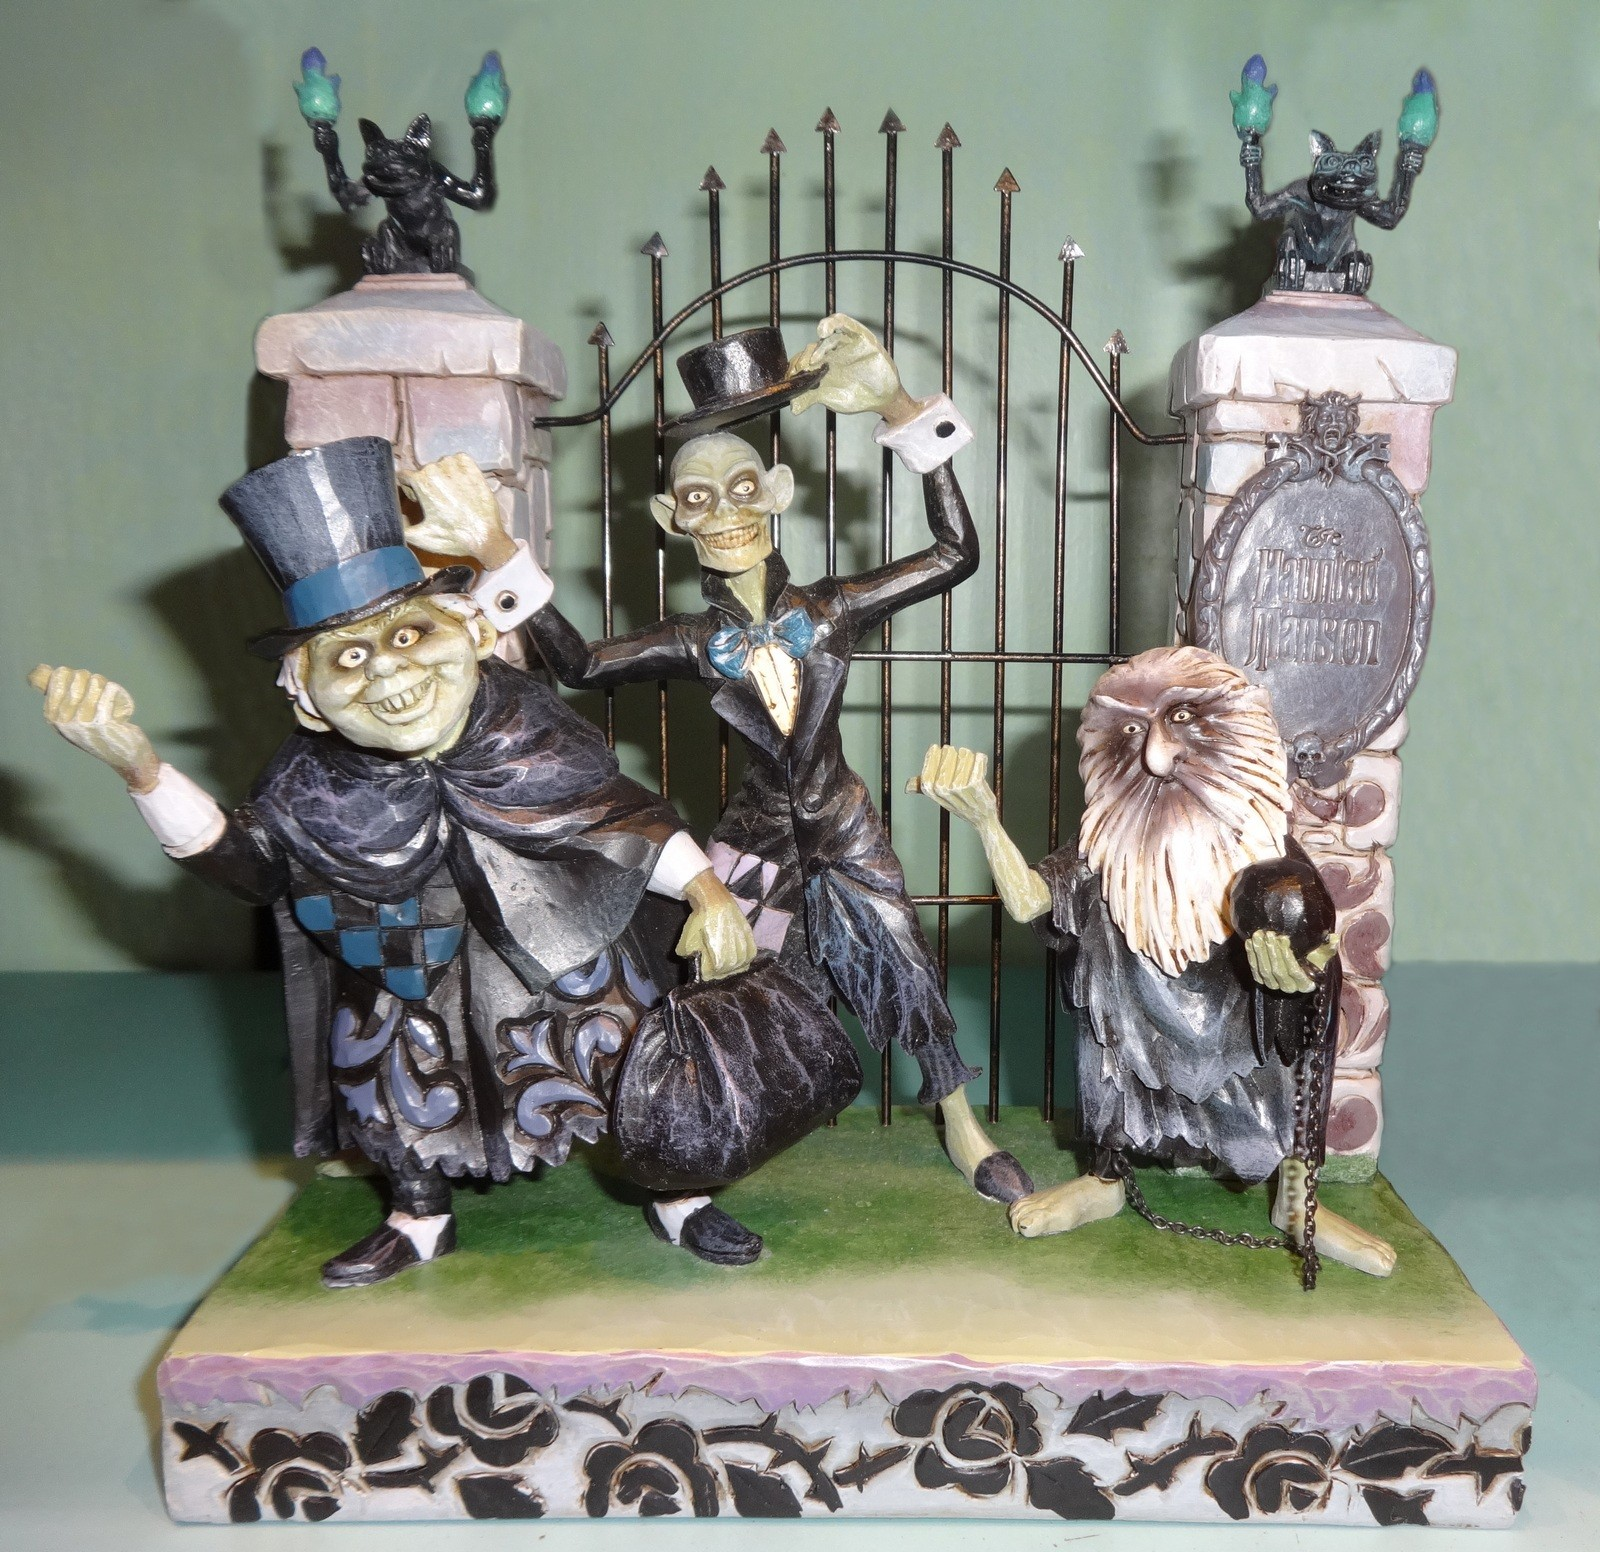 Disney Traditions ~ The Hitchhiking Ghosts Figurine by Artist Jim Shore © Dizdude.com